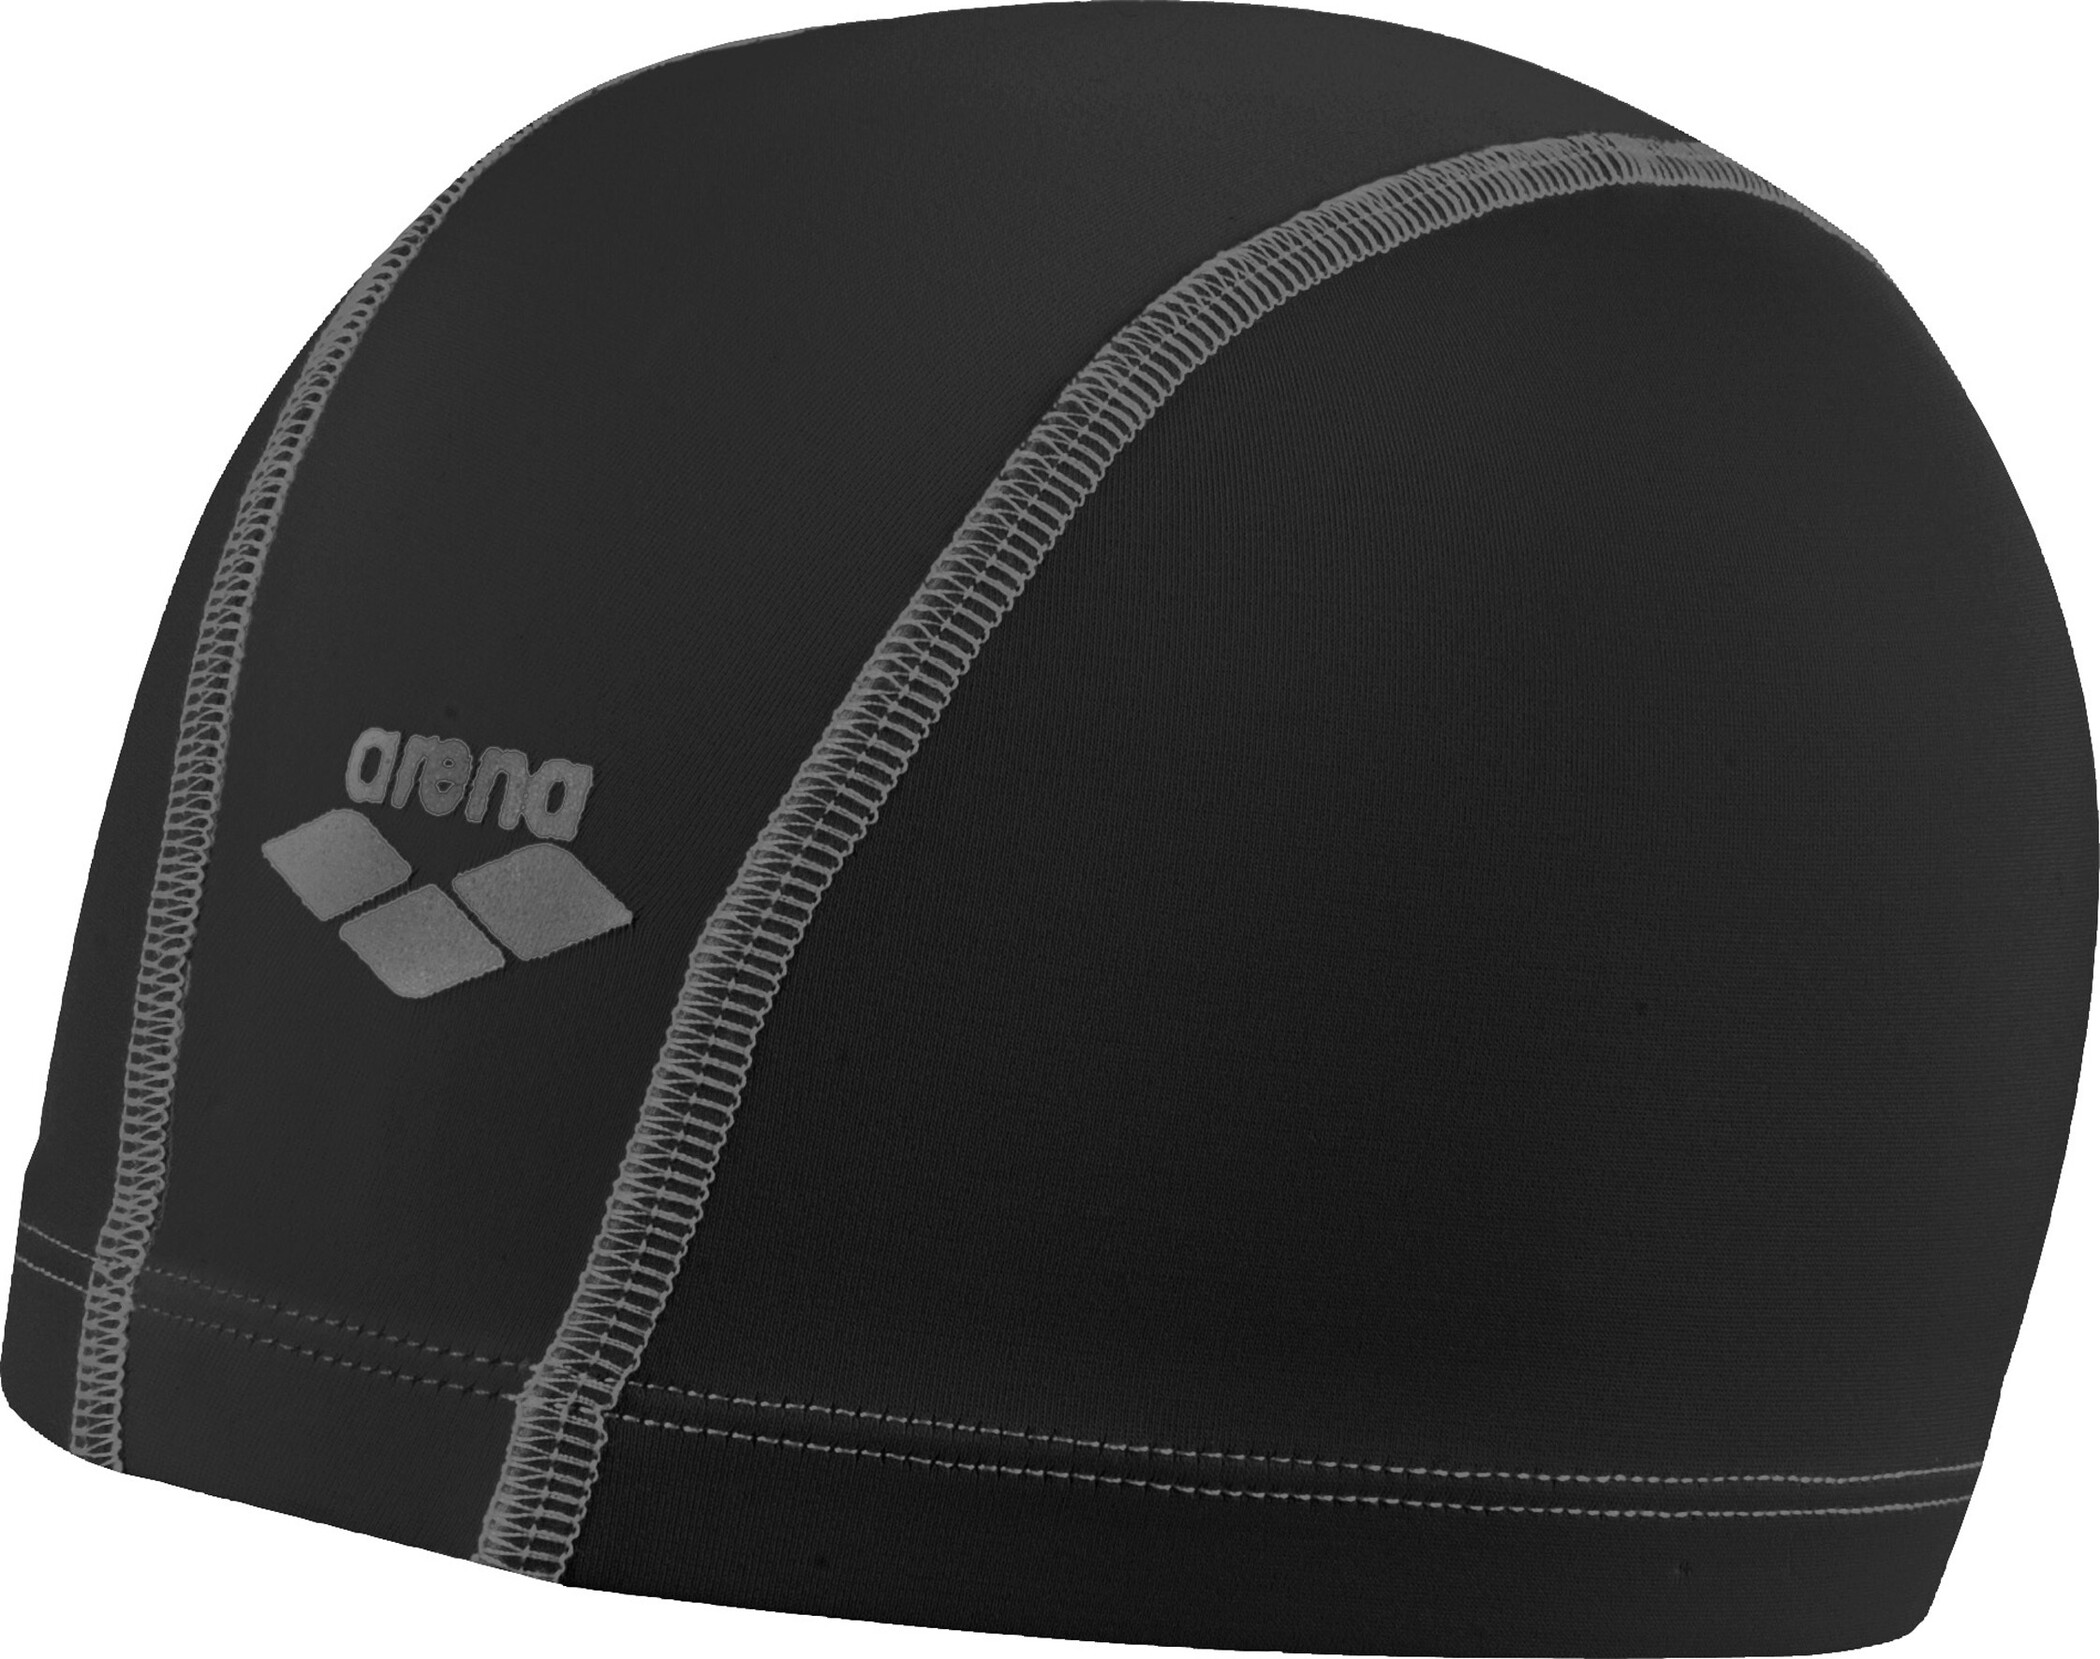 cheap for discount 3a41a ee4d1 arena Unix Cap black-black-silver.jpg